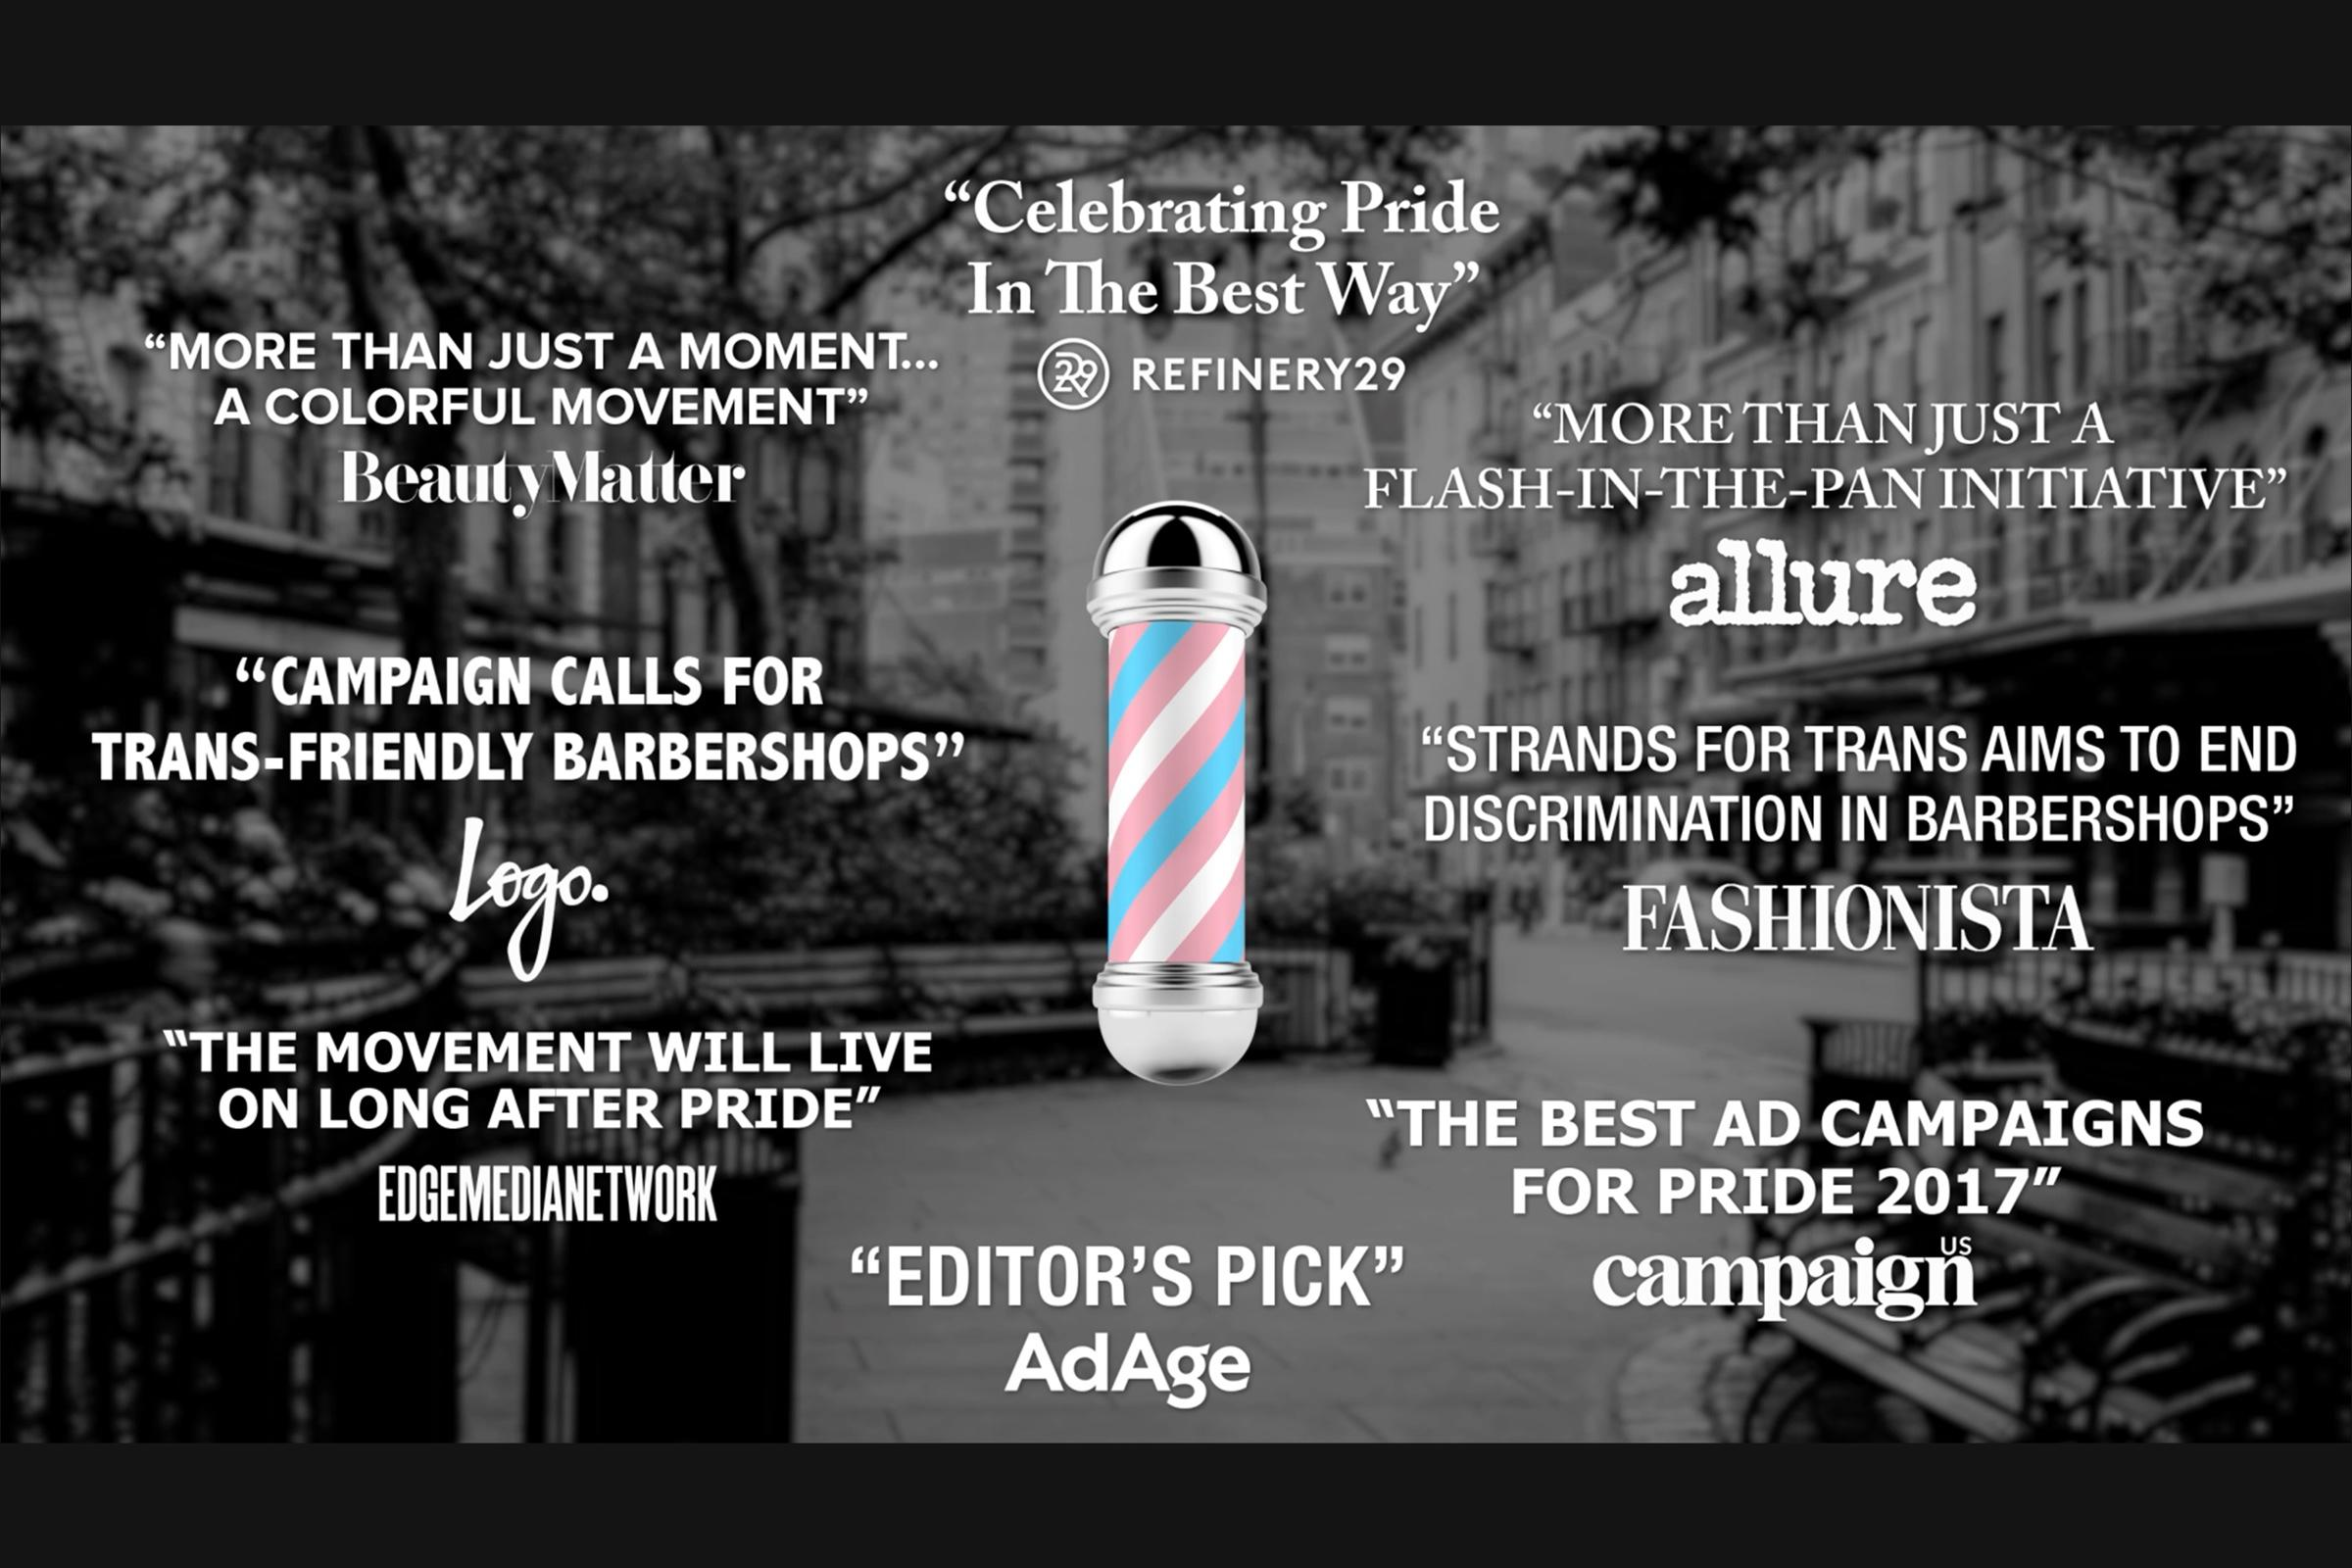 Barba Men's Grooming Boutique: Strands For Trans